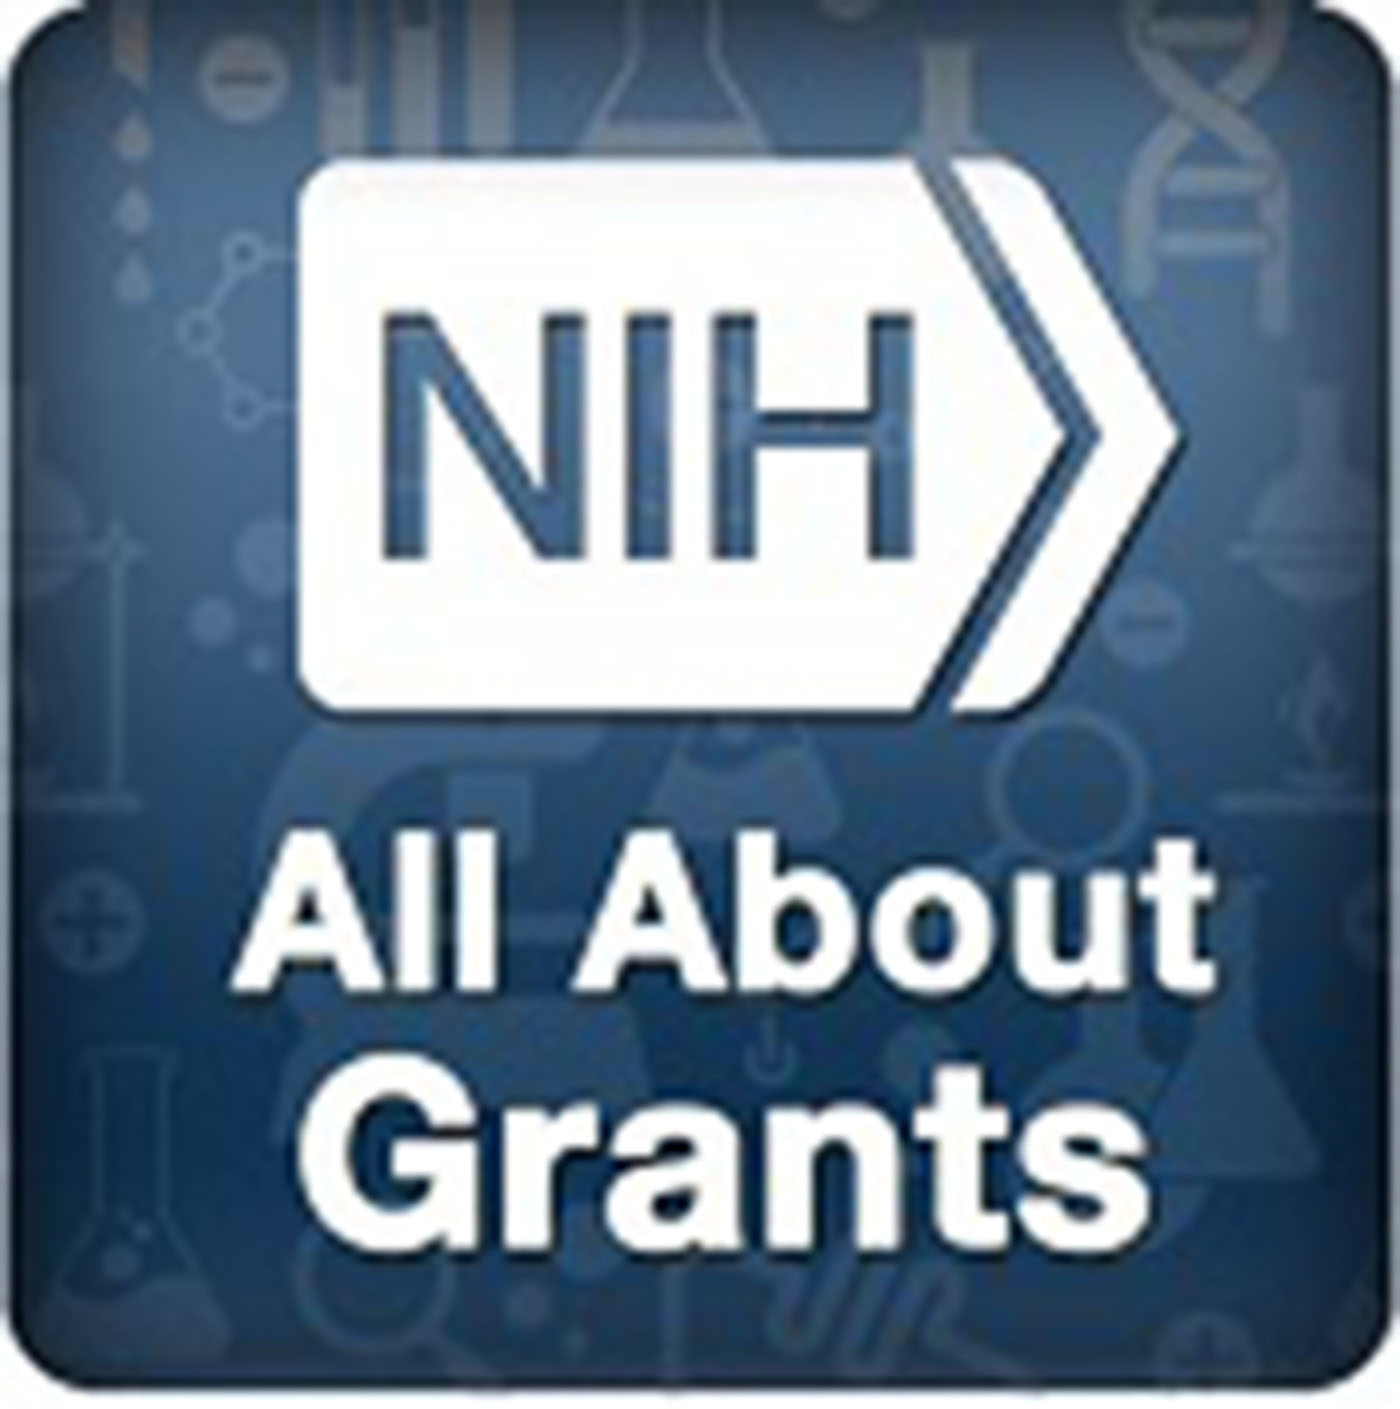 All About Grants At Nih By Office Of Extramural Research On Apple